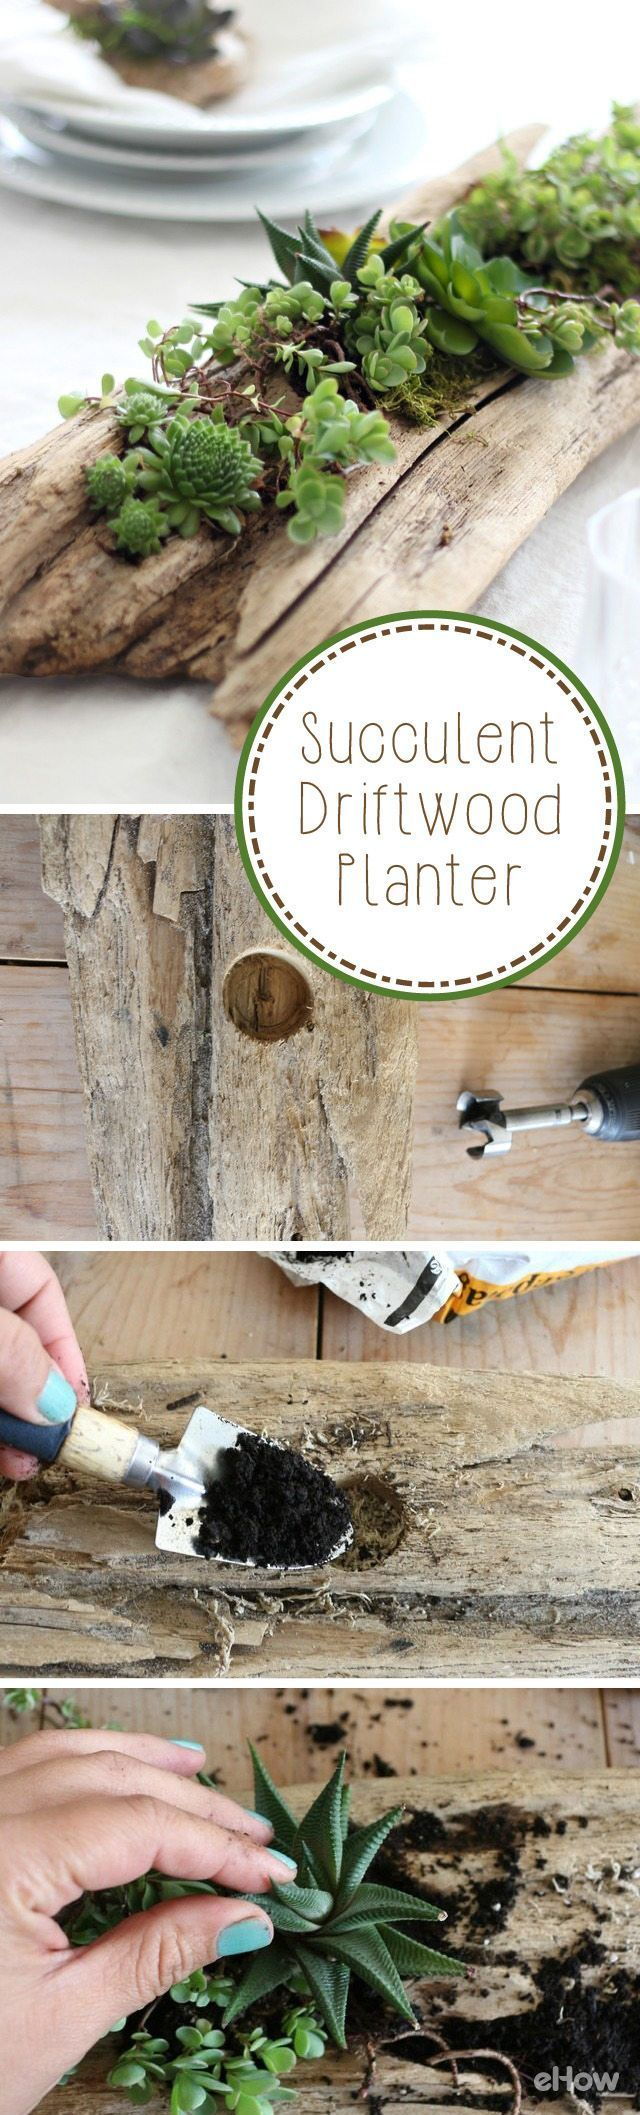 The perfect centerpiece!  Love the rustic elegance this brings to the table, and it's perfect for just about any setting. Succulents are so easy to maintain, making this driftwood planter and all around win: http://www.ehow.com/how_12340931_diy-succulent-driftwood-planter.html http://www.ehow.com/how_12340931_diy-succulent-driftwood-planter.html?crlt.pid=camp.mCQxt9VXs9sF&crlt.pid=camp.MWzlQnvUjuZE&utm_conte…